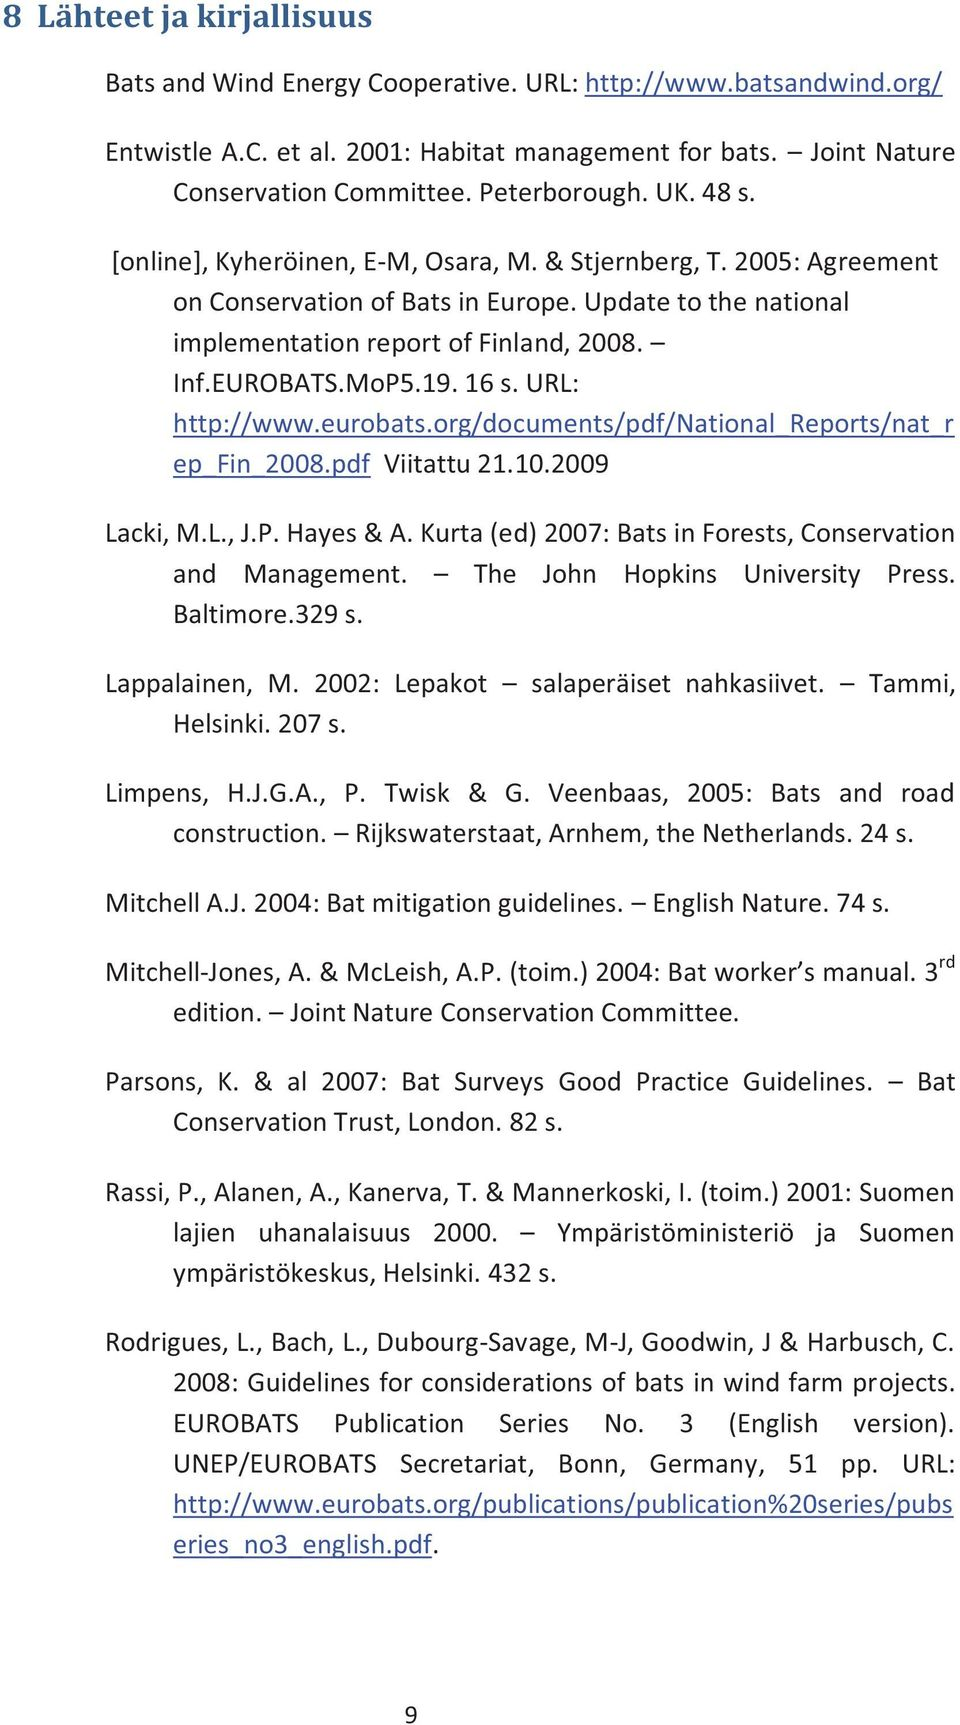 16 s. URL: http://www.eurobats.org/documents/pdf/national_reports/nat_r ep_fin_2008.pdf Viitattu 21.10.2009 Lacki, M.L., J.P. Hayes & A. Kurta (ed) 2007: Bats in Forests, Conservation and Management.